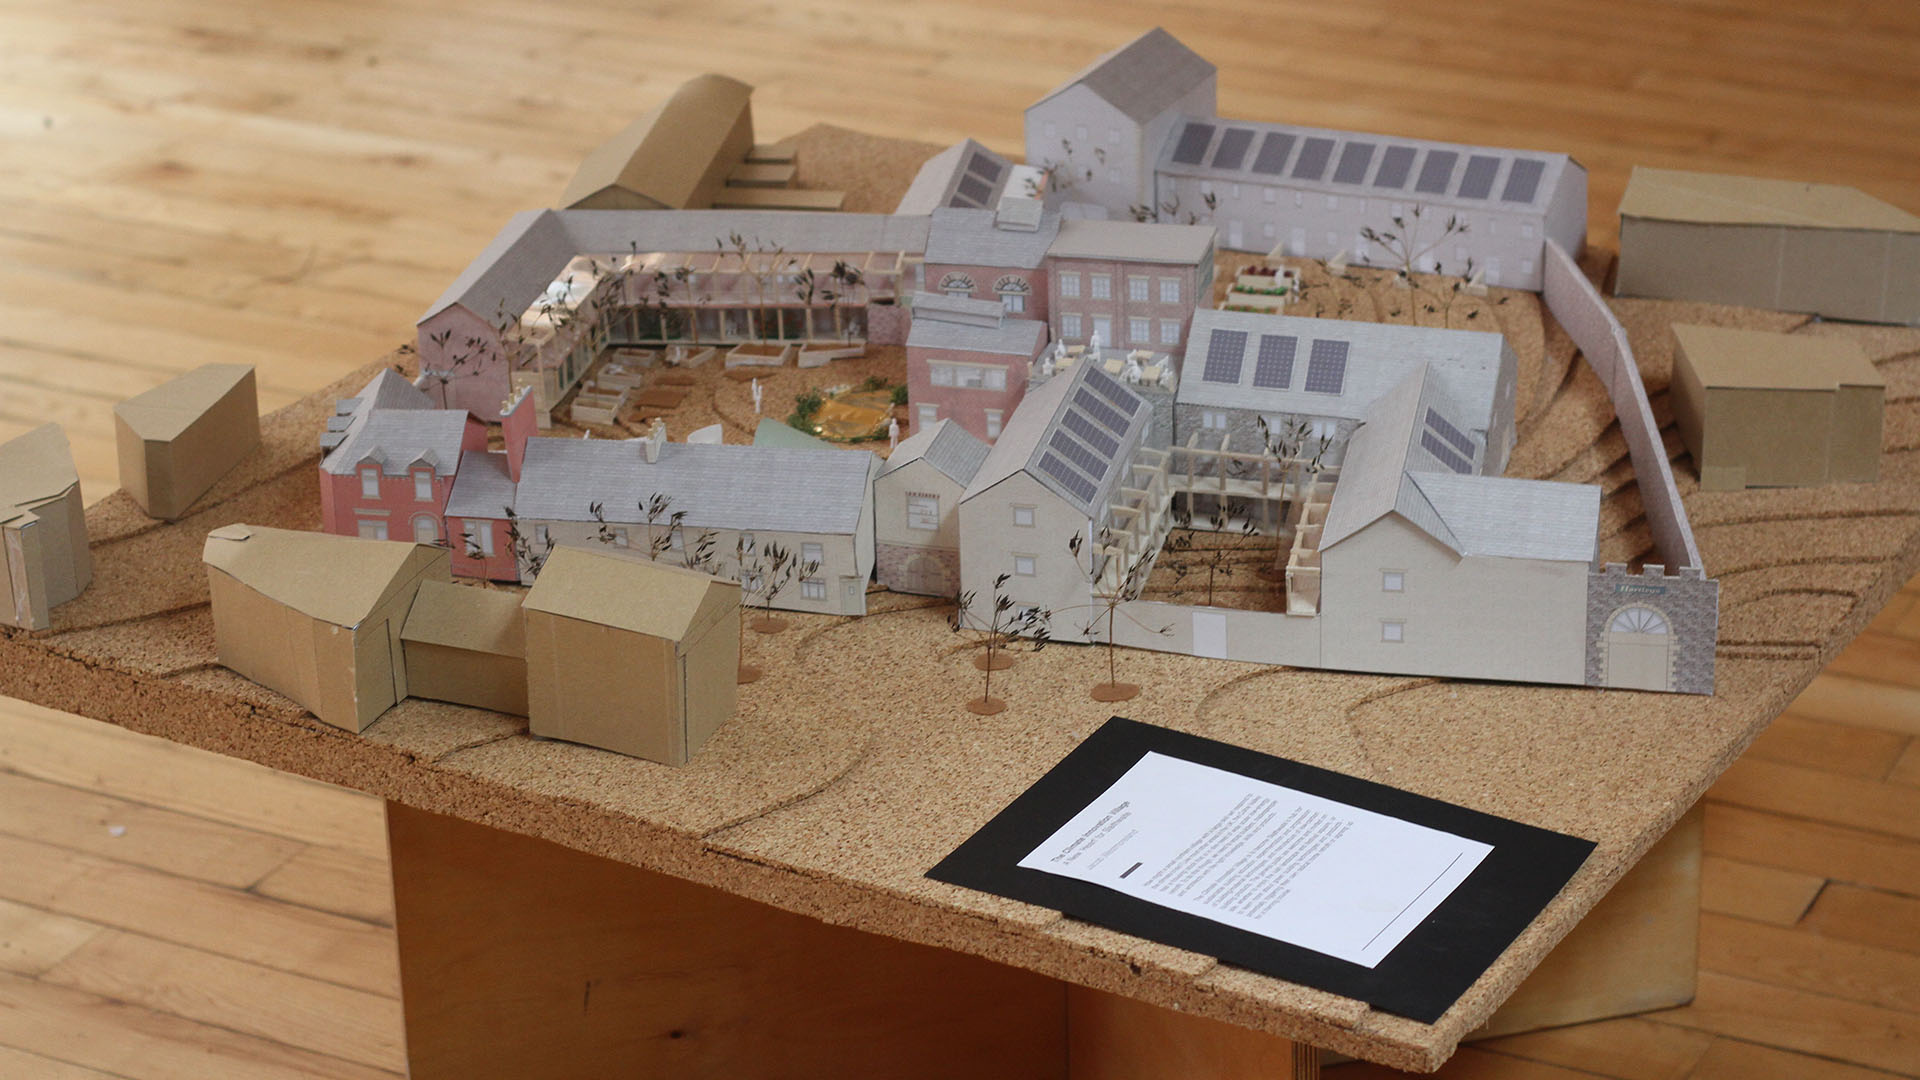 Cardboard model of buildings made by a CAT architecture student